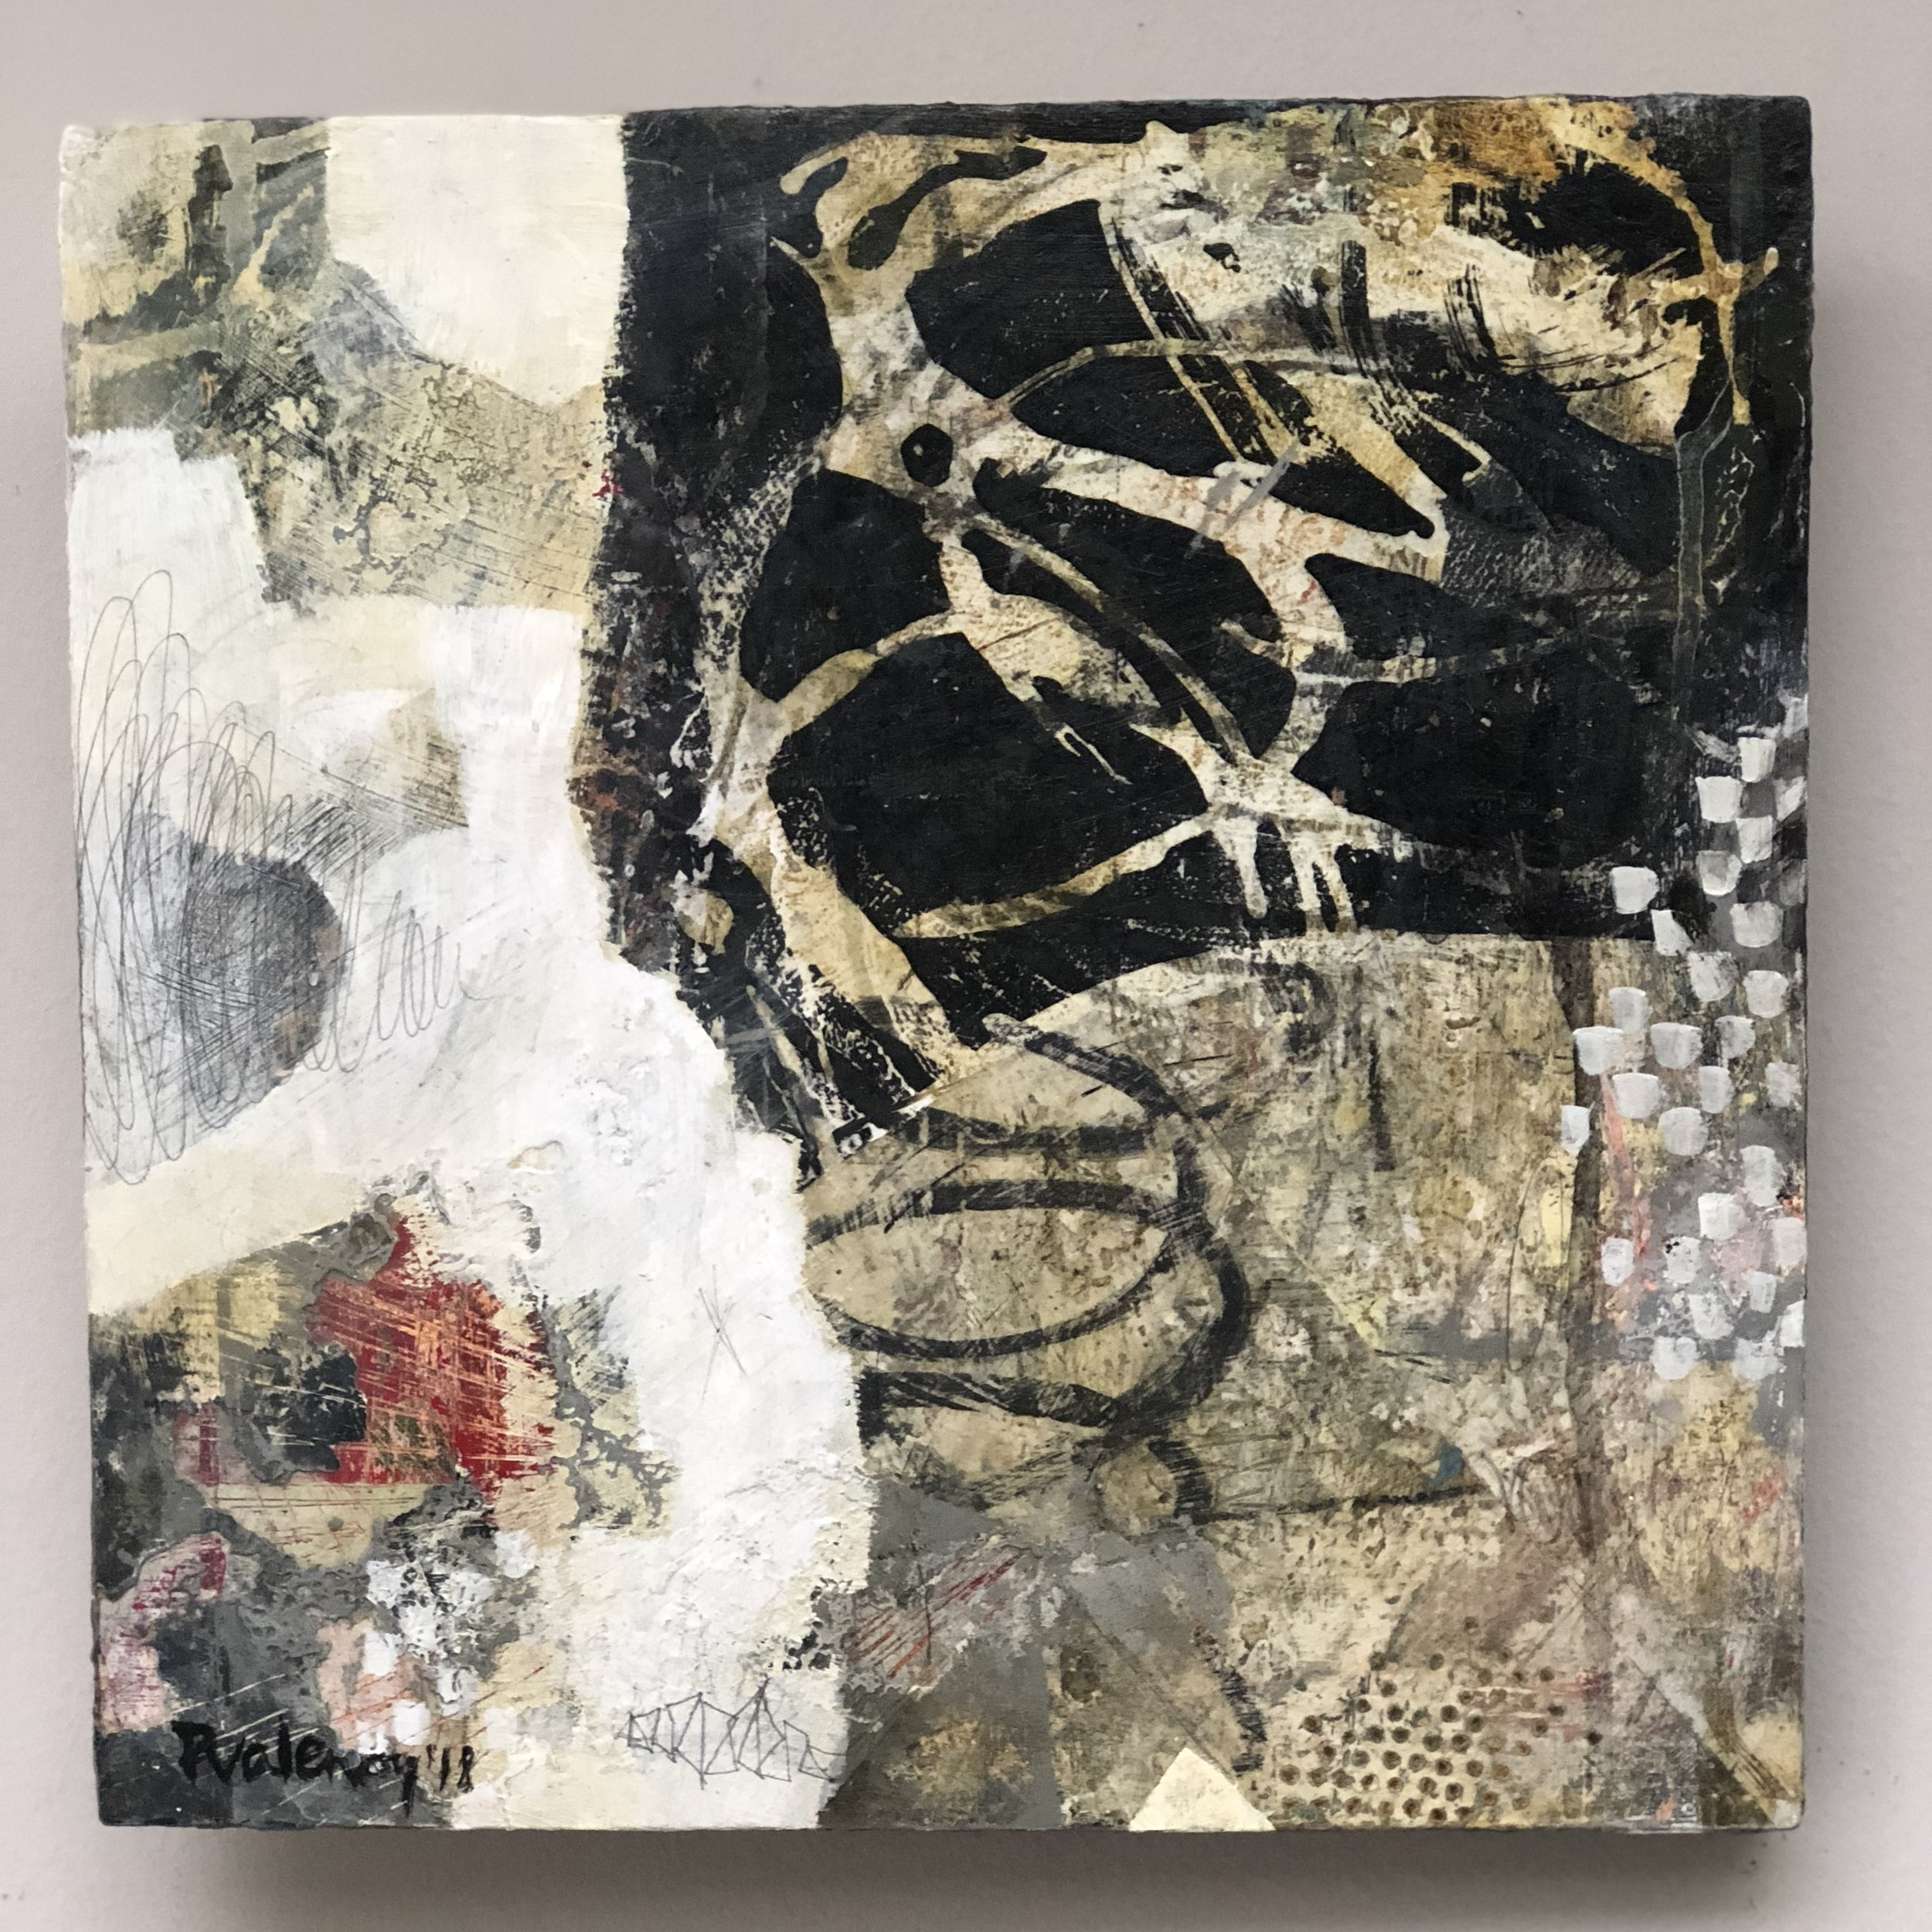 """About Growing   Mixed-media painting on Panel / Board / MDF  by  Paula Valenzuela   Size: 14 x 14""""   $550.00"""